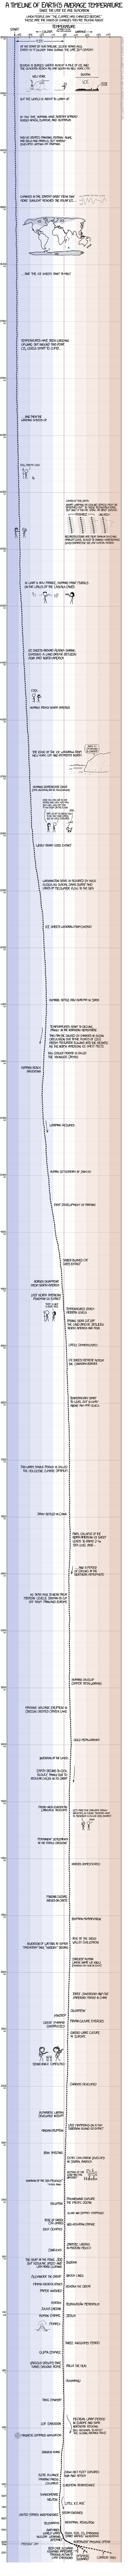 IMAGE(http://assets.climatecentral.org/images/made/9_13_16_Brian_xkcdearthtemperaturetimeline_740_14957_s_c1_c_c.png)